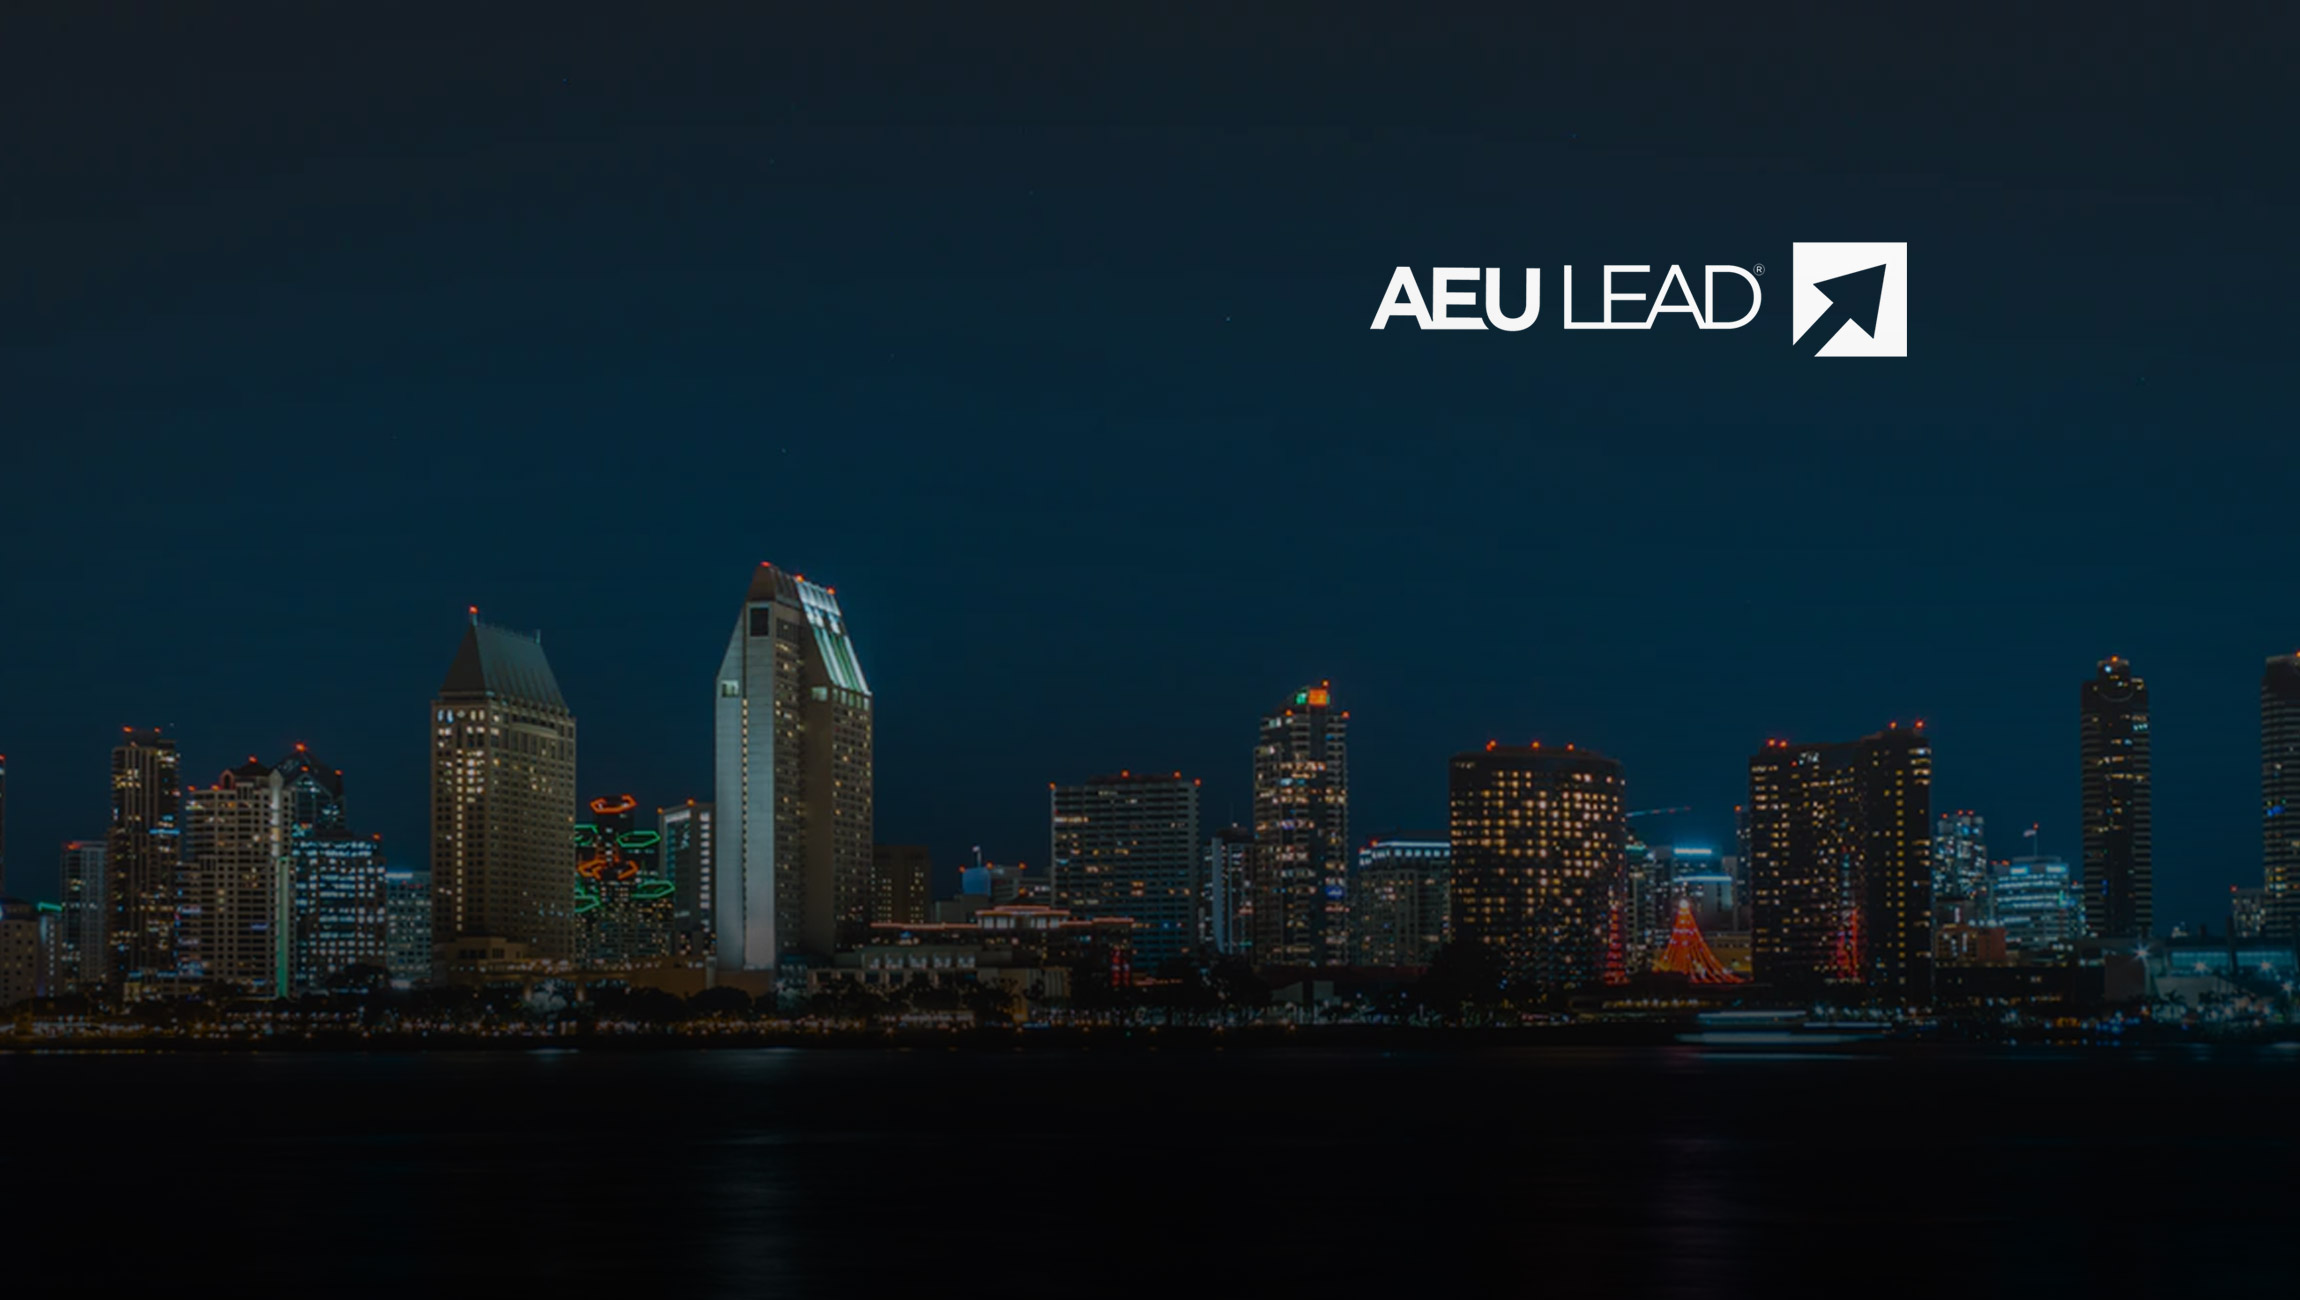 AEU LEAD Announces Leadership Development Workshop for Middle Managers in San Diego